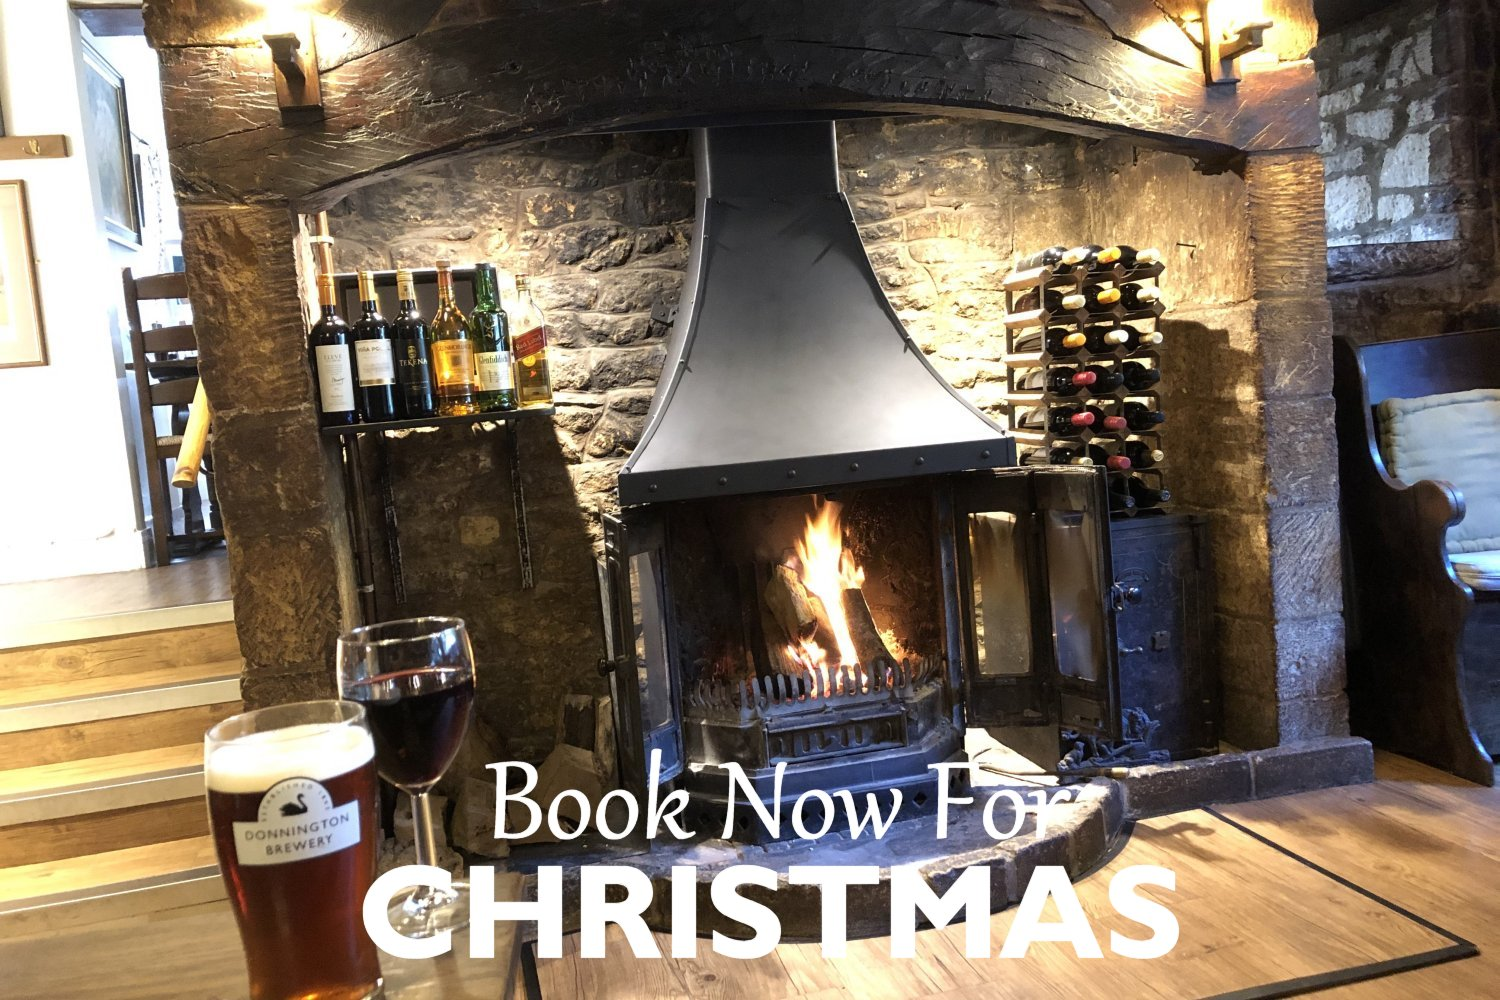 Christmas at The Plough at Ford, Cotswold pub food, Sunday lunch & drink at its best